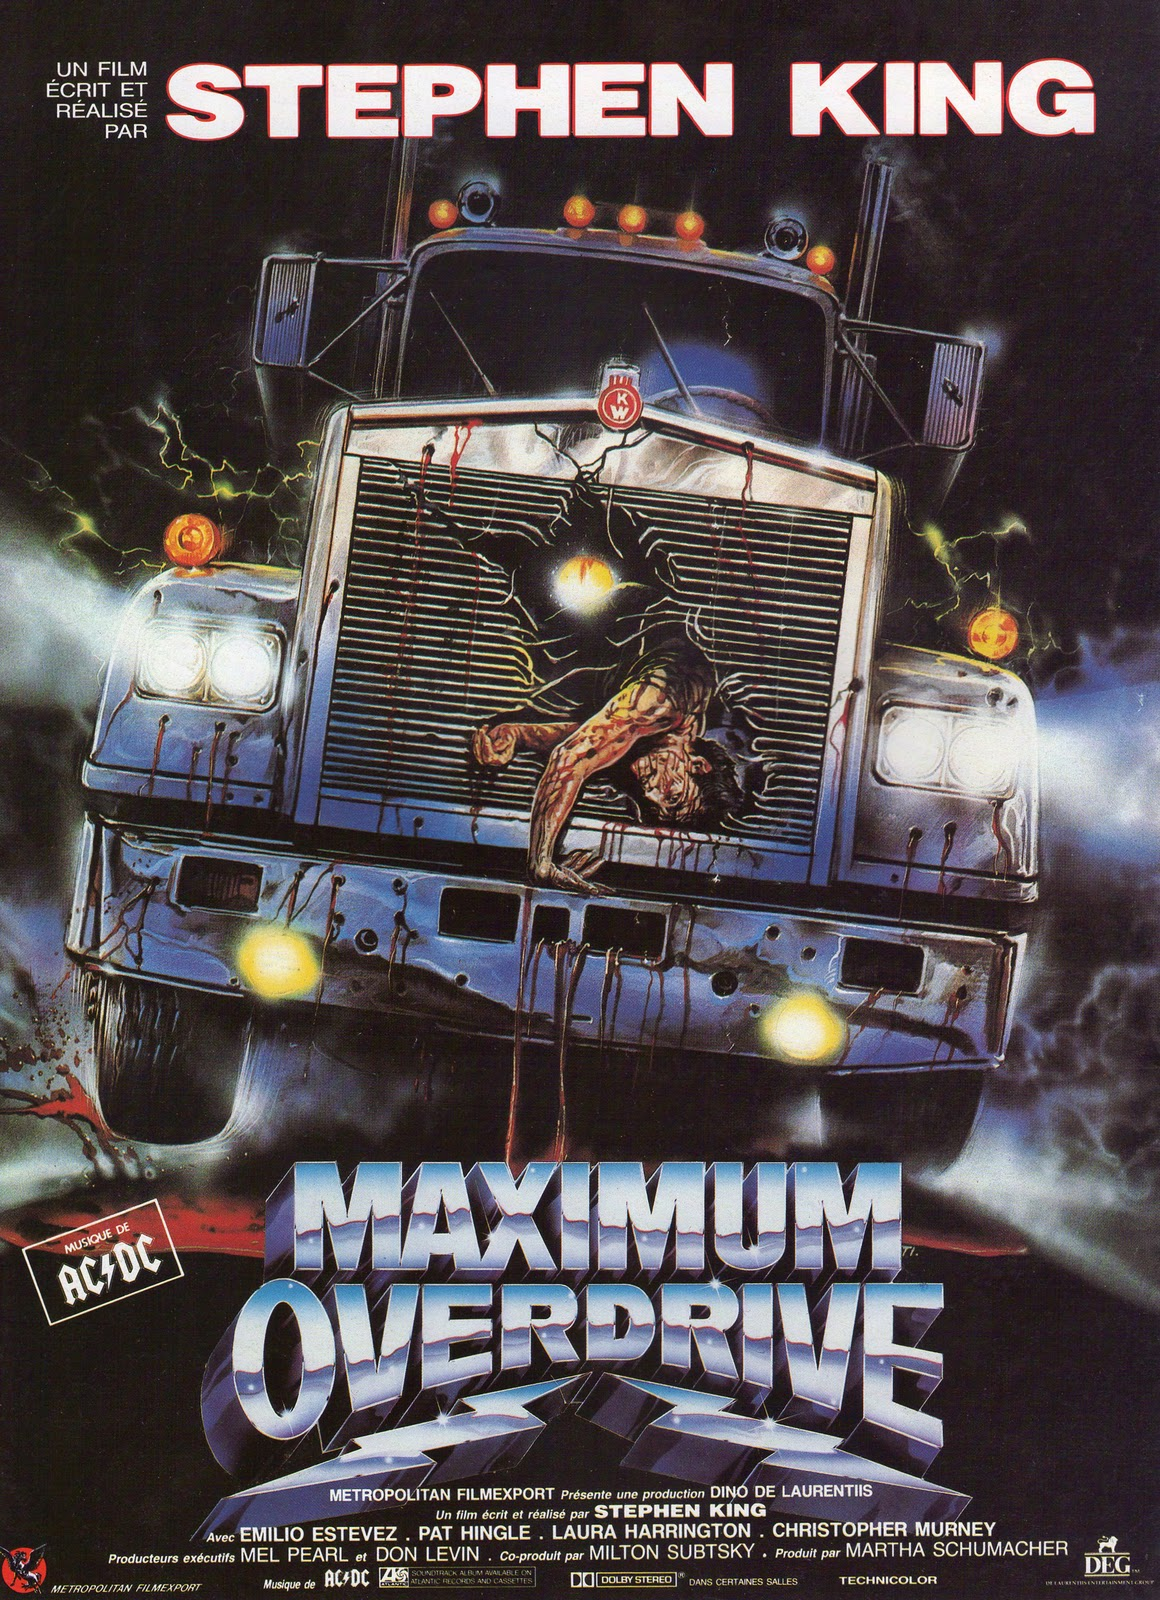 Maximum Overdrive | Stephen King Wiki | FANDOM powered by